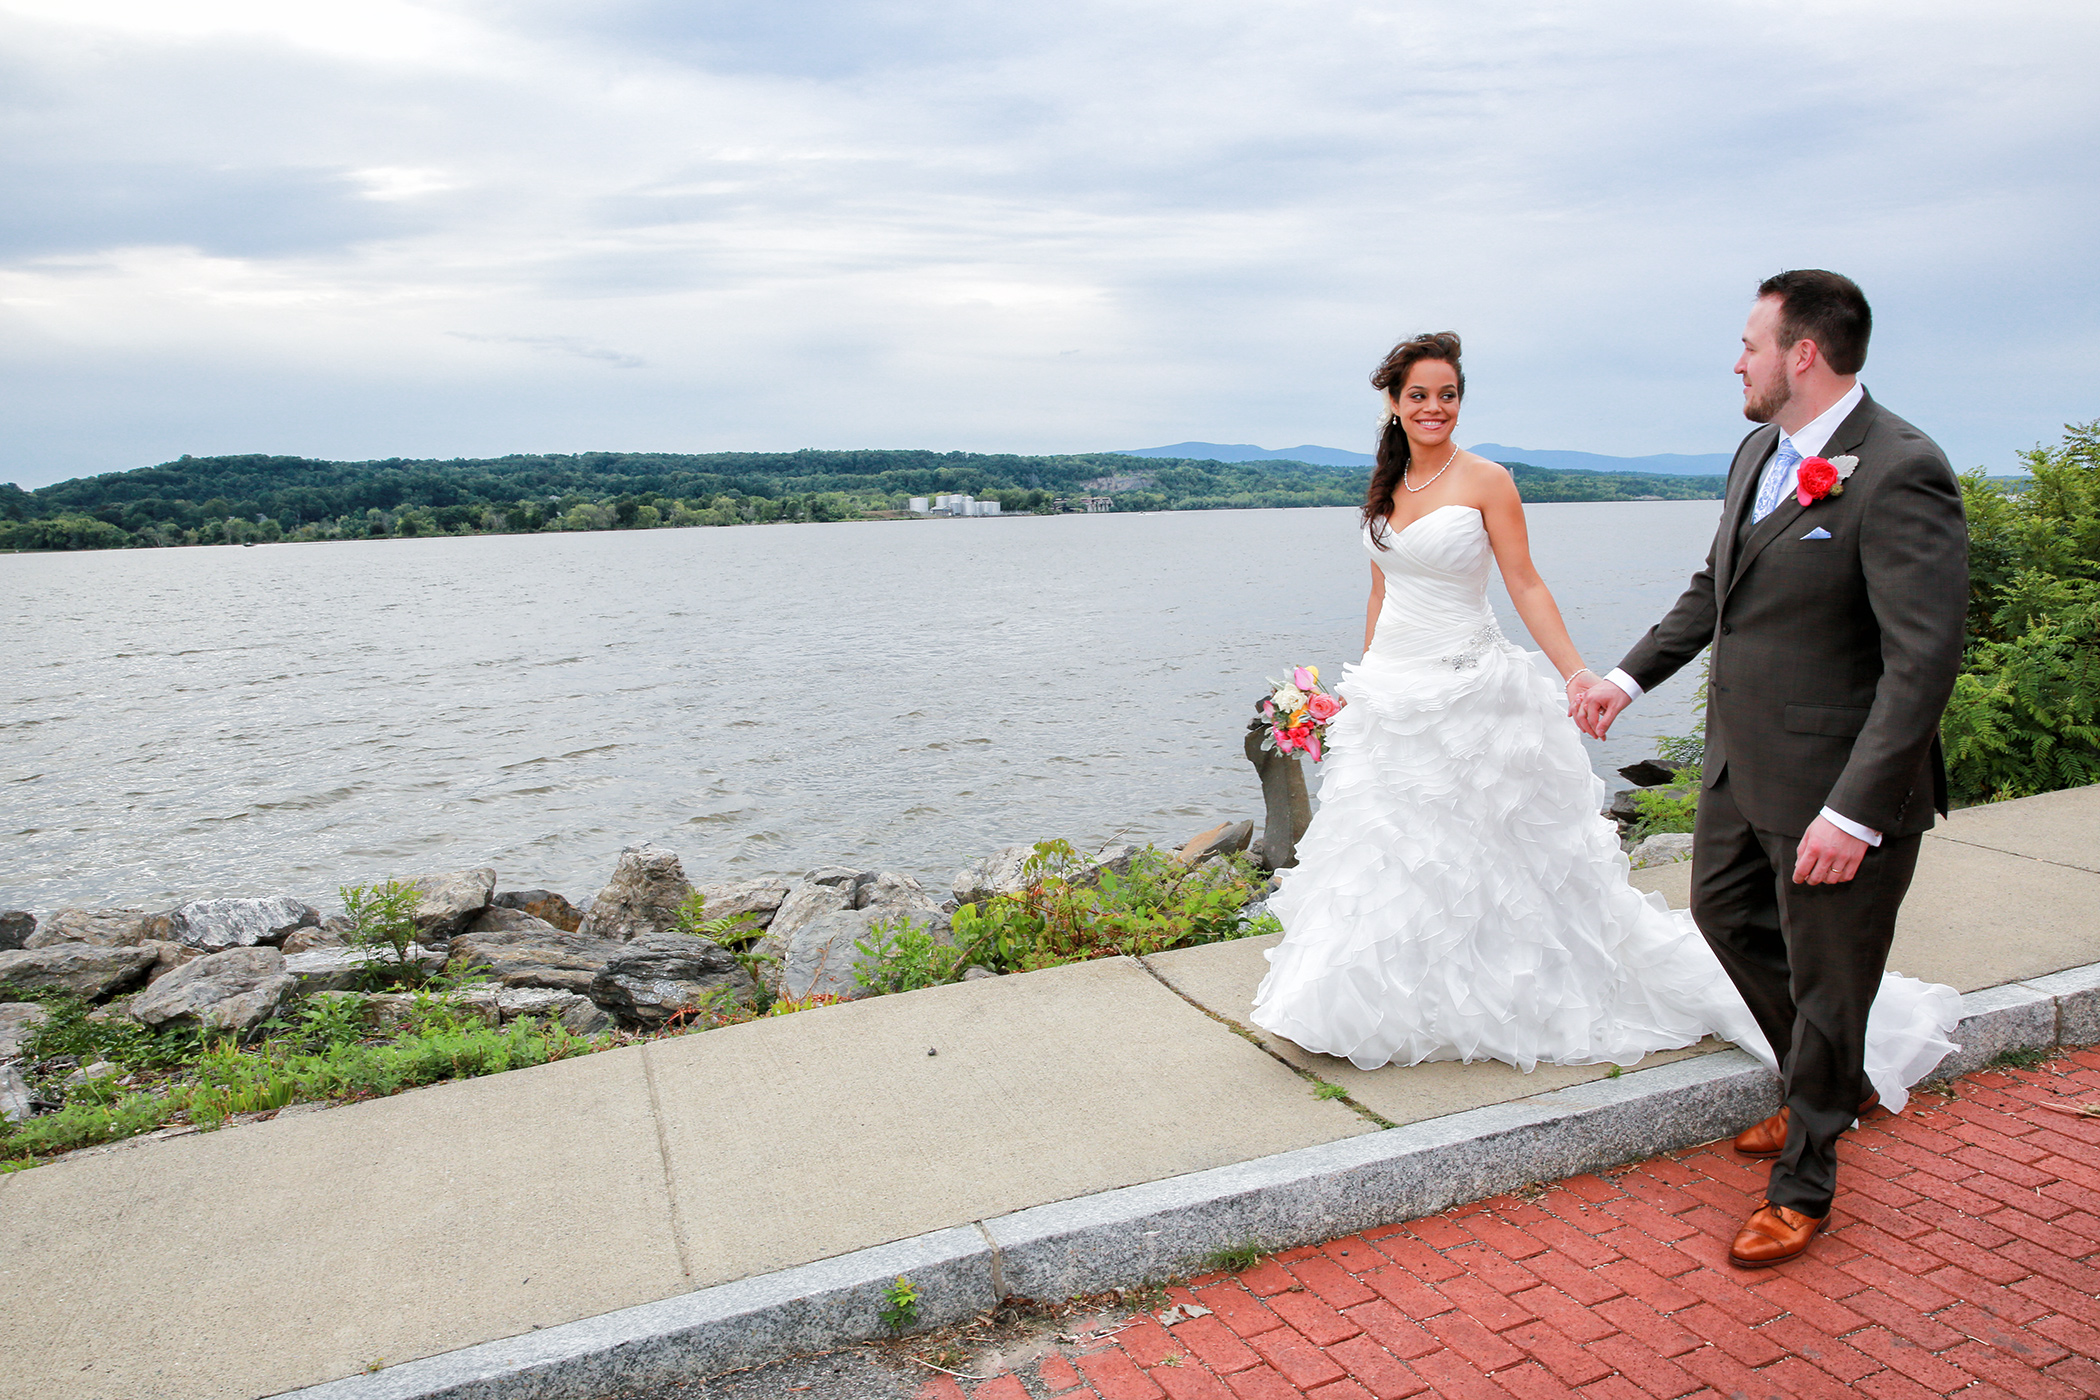 Rhinecliff wedding Photo along the Hudson River